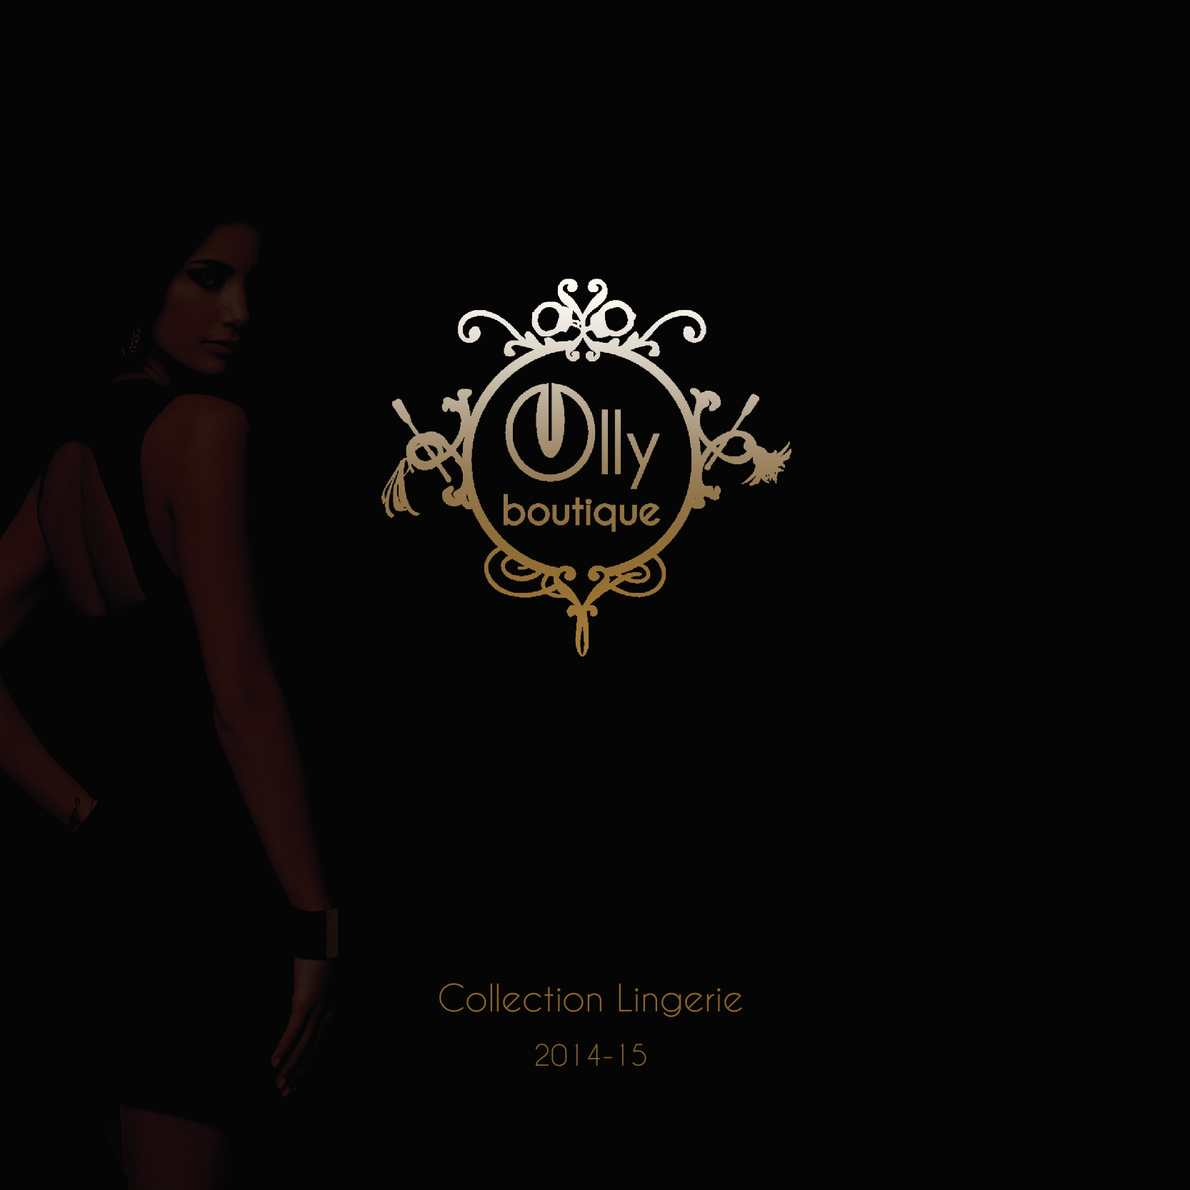 Catalogue lingerie Olly Boutique 2014-15